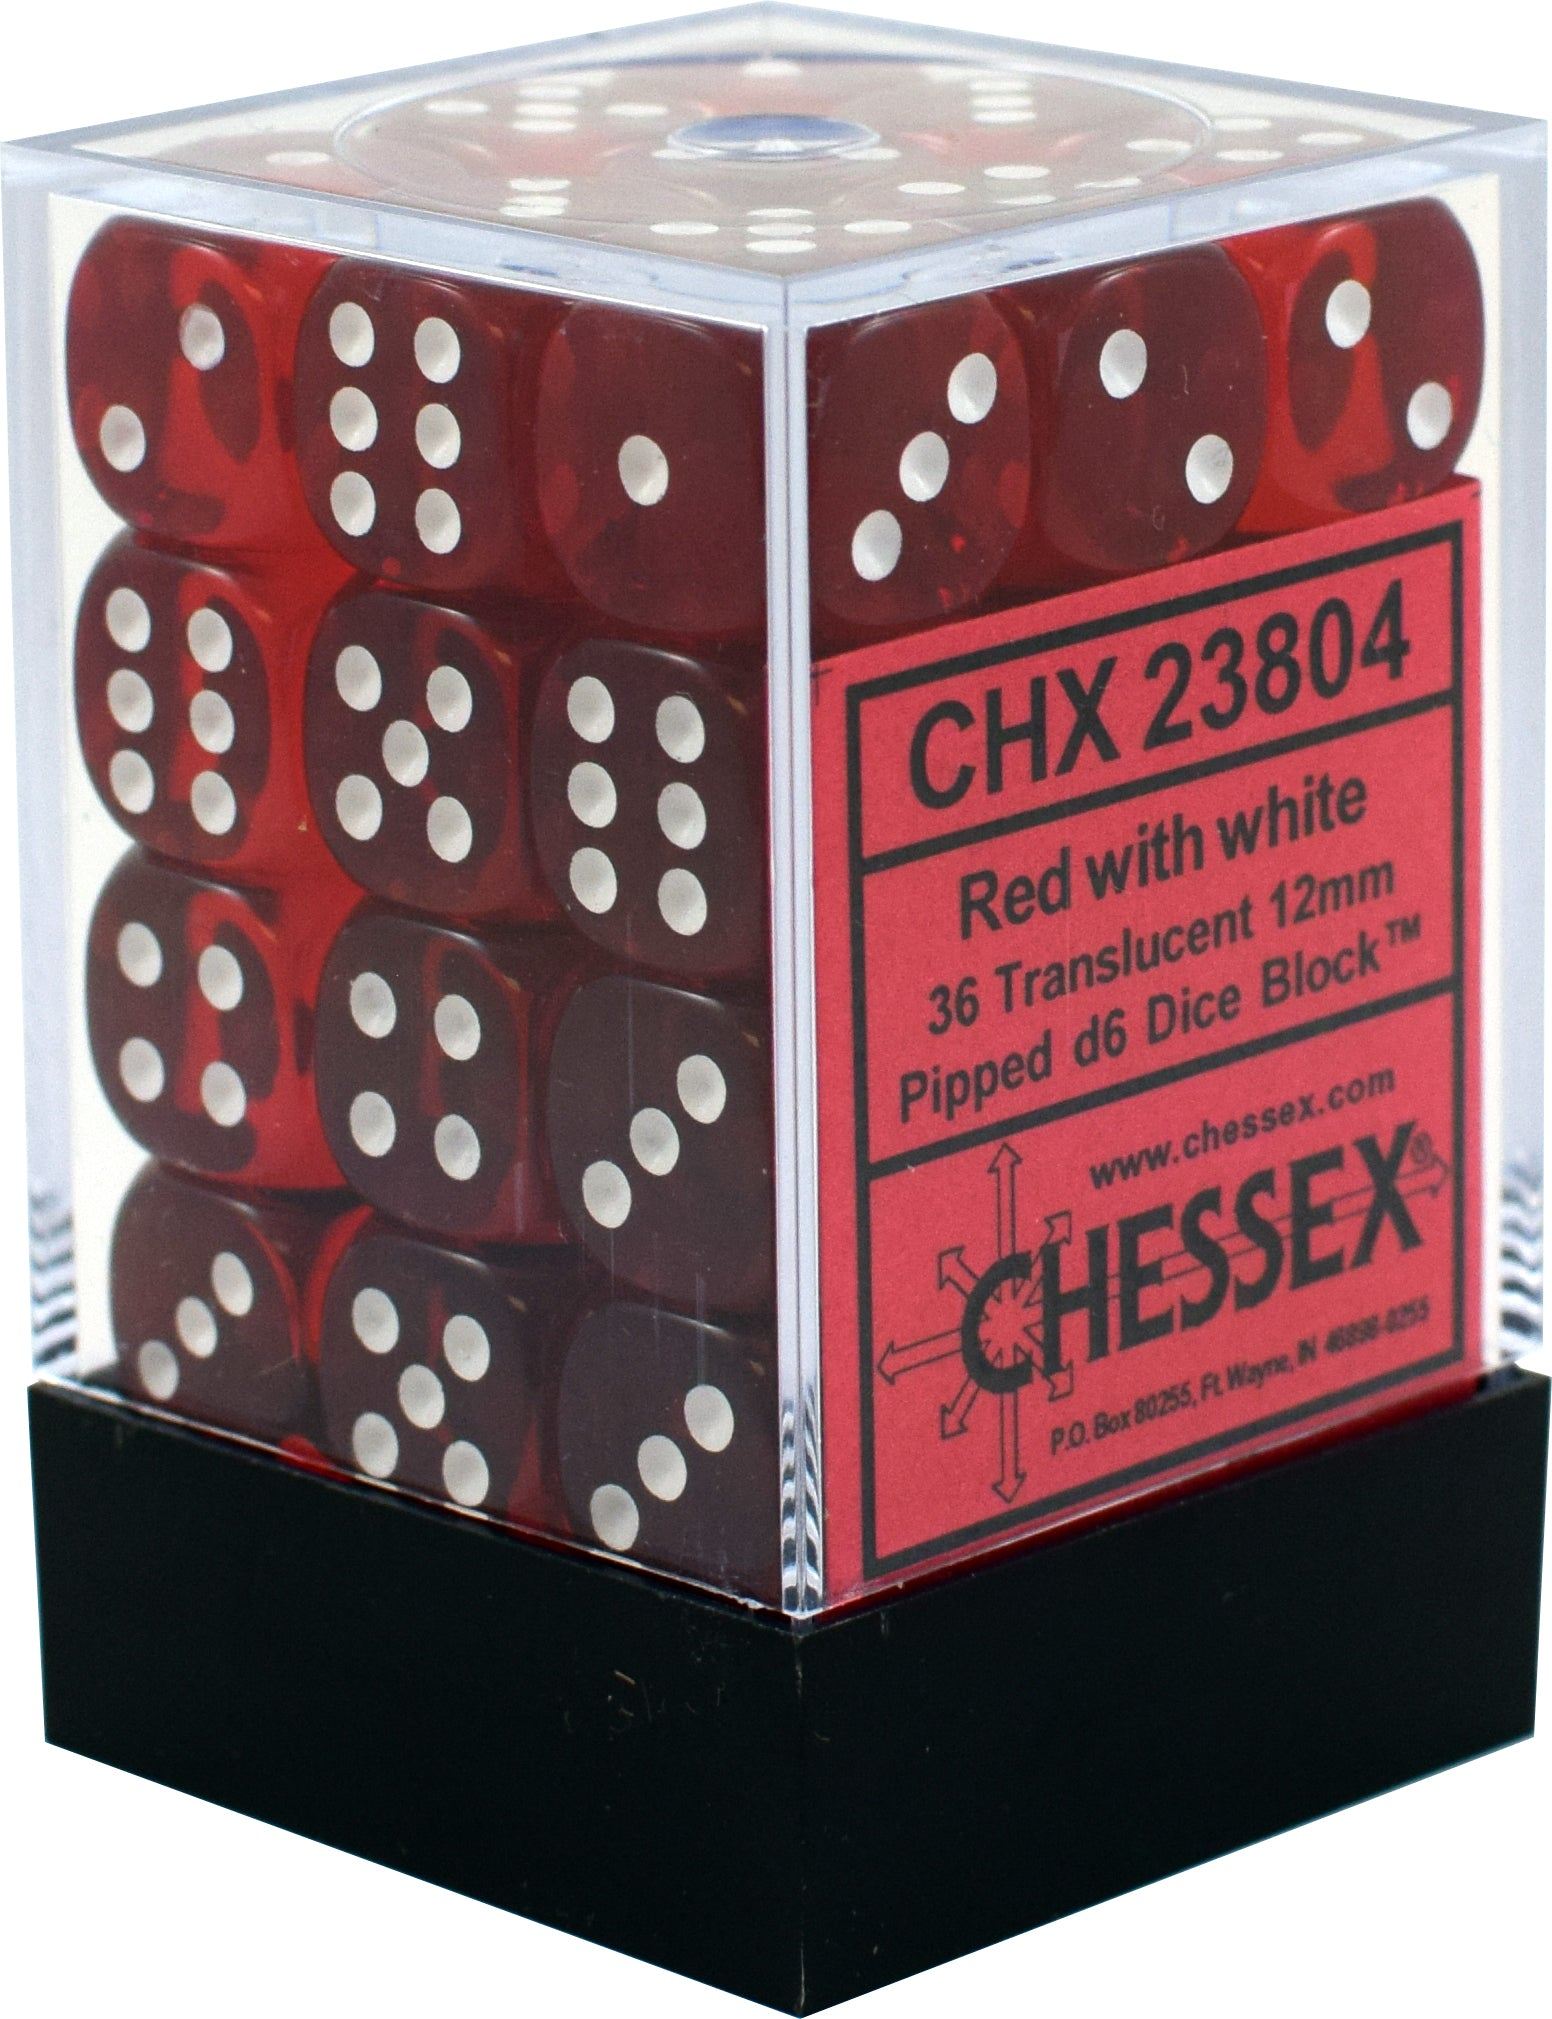 36 Red w/white Translucent 12mm D6 Dice Block - CHX 23804 | North of Exile Games